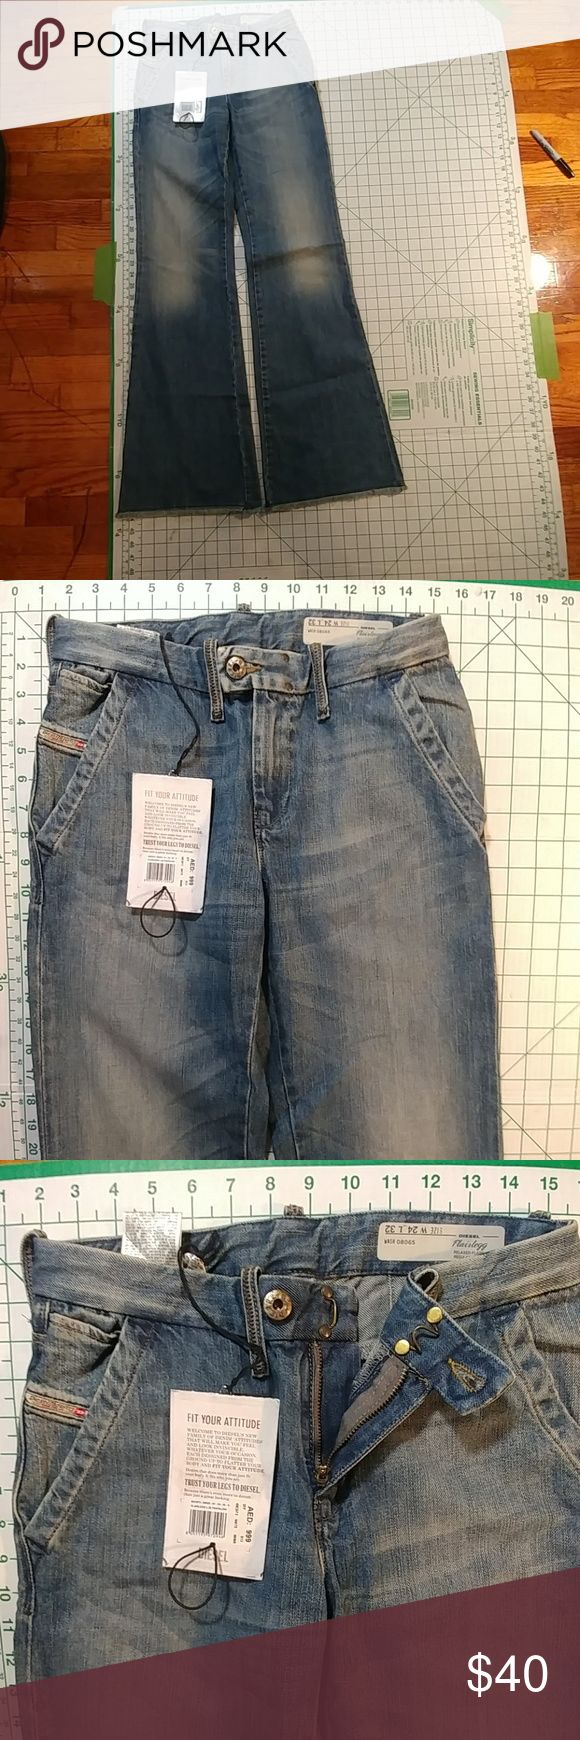 NWT Diesel NWT diesel women's jeans flare leg size 24x32. Please look at the sizes on pics I provided I took pic of waist and of inseam. Diesel Jeans Flare & Wide Leg